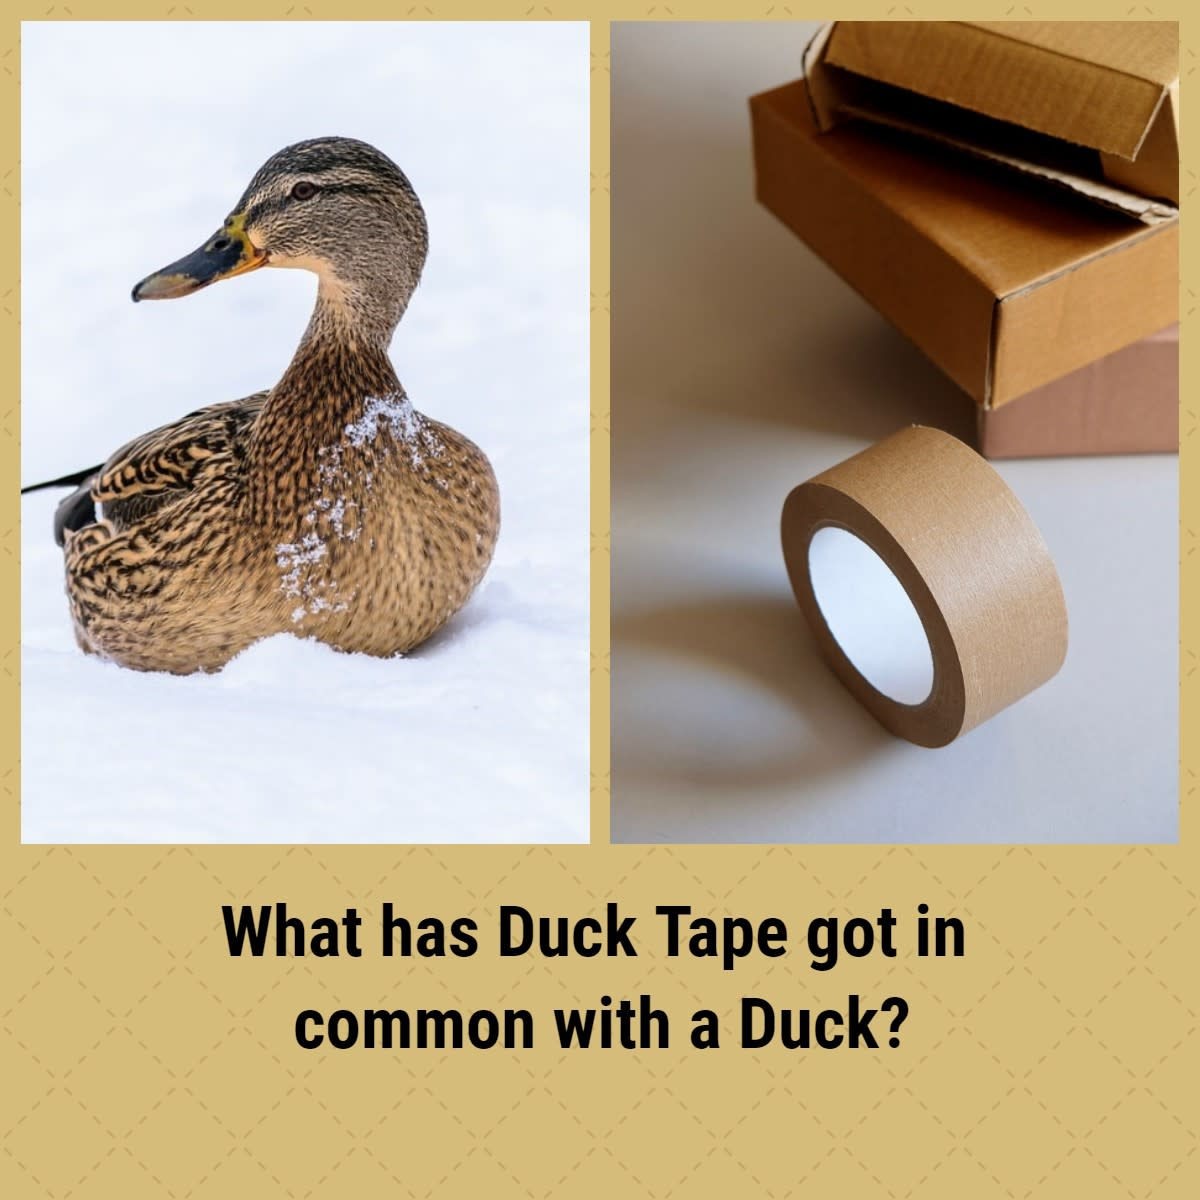 It's simply imponderable! What on earth has a duck and duck-tape in common?